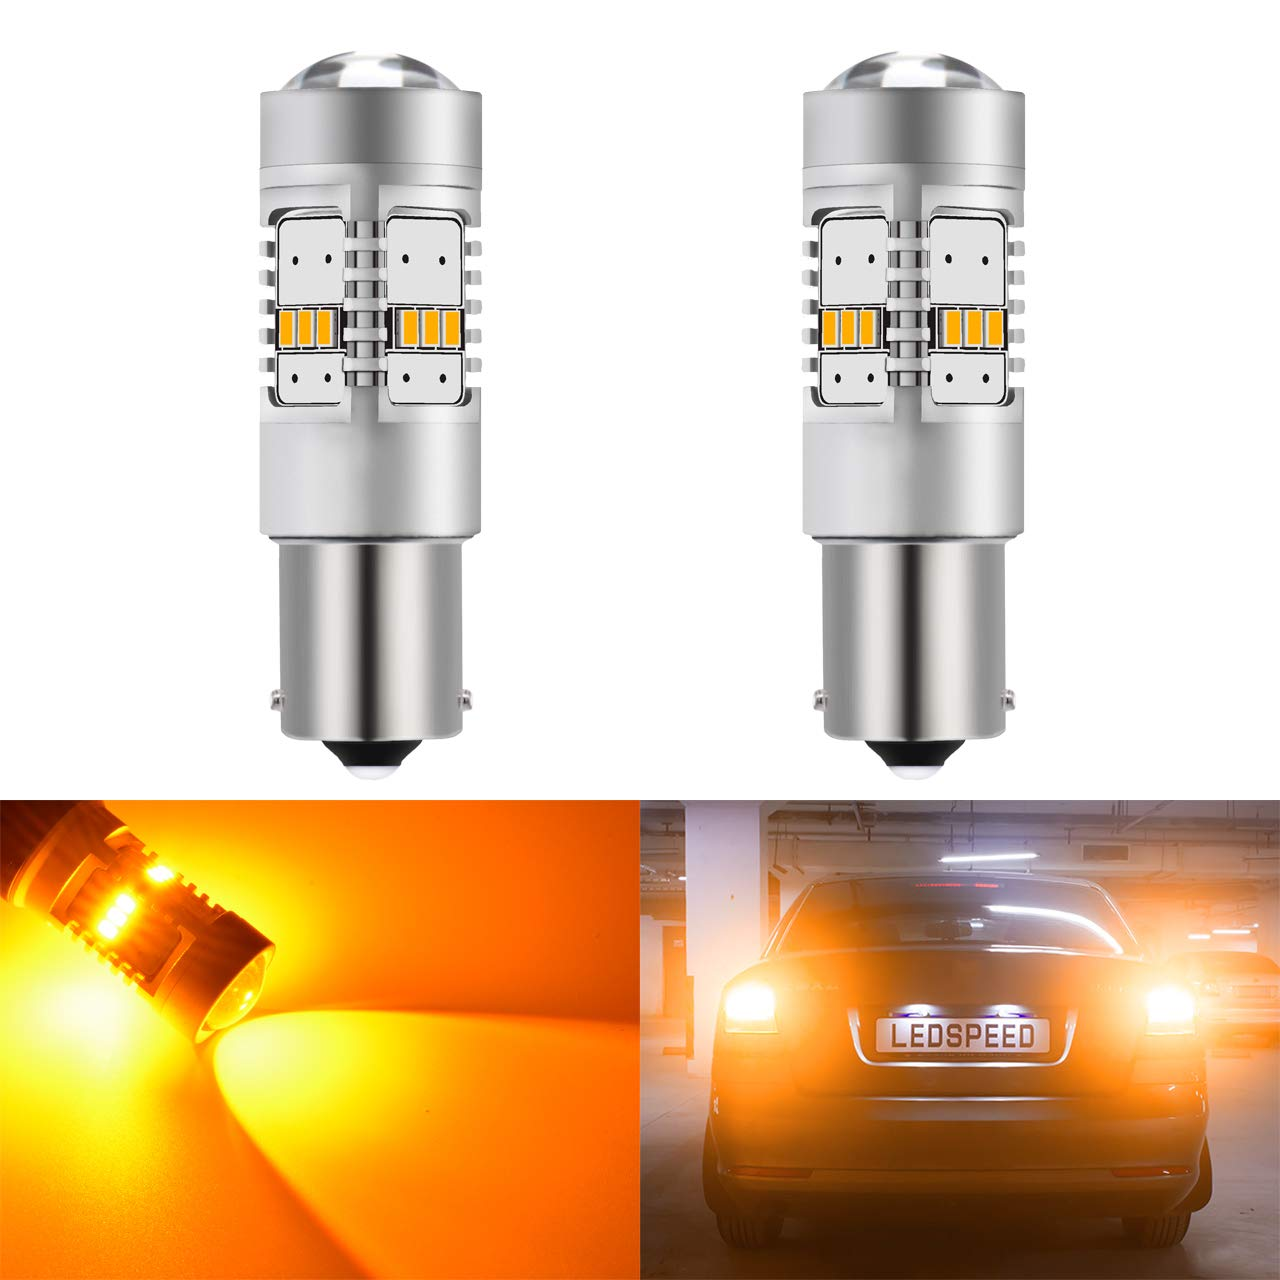 KaTur 1800LM White 3157 3047 3057 3457 3155 3156 3456 LED Replacement Bulb 14SMD CREE 3020 RV Camper SUV MPV Car Turn Tail Signal Bulbs Brake Light Lamp Backup with Canbus Decoder Error Free 50W 8ohm